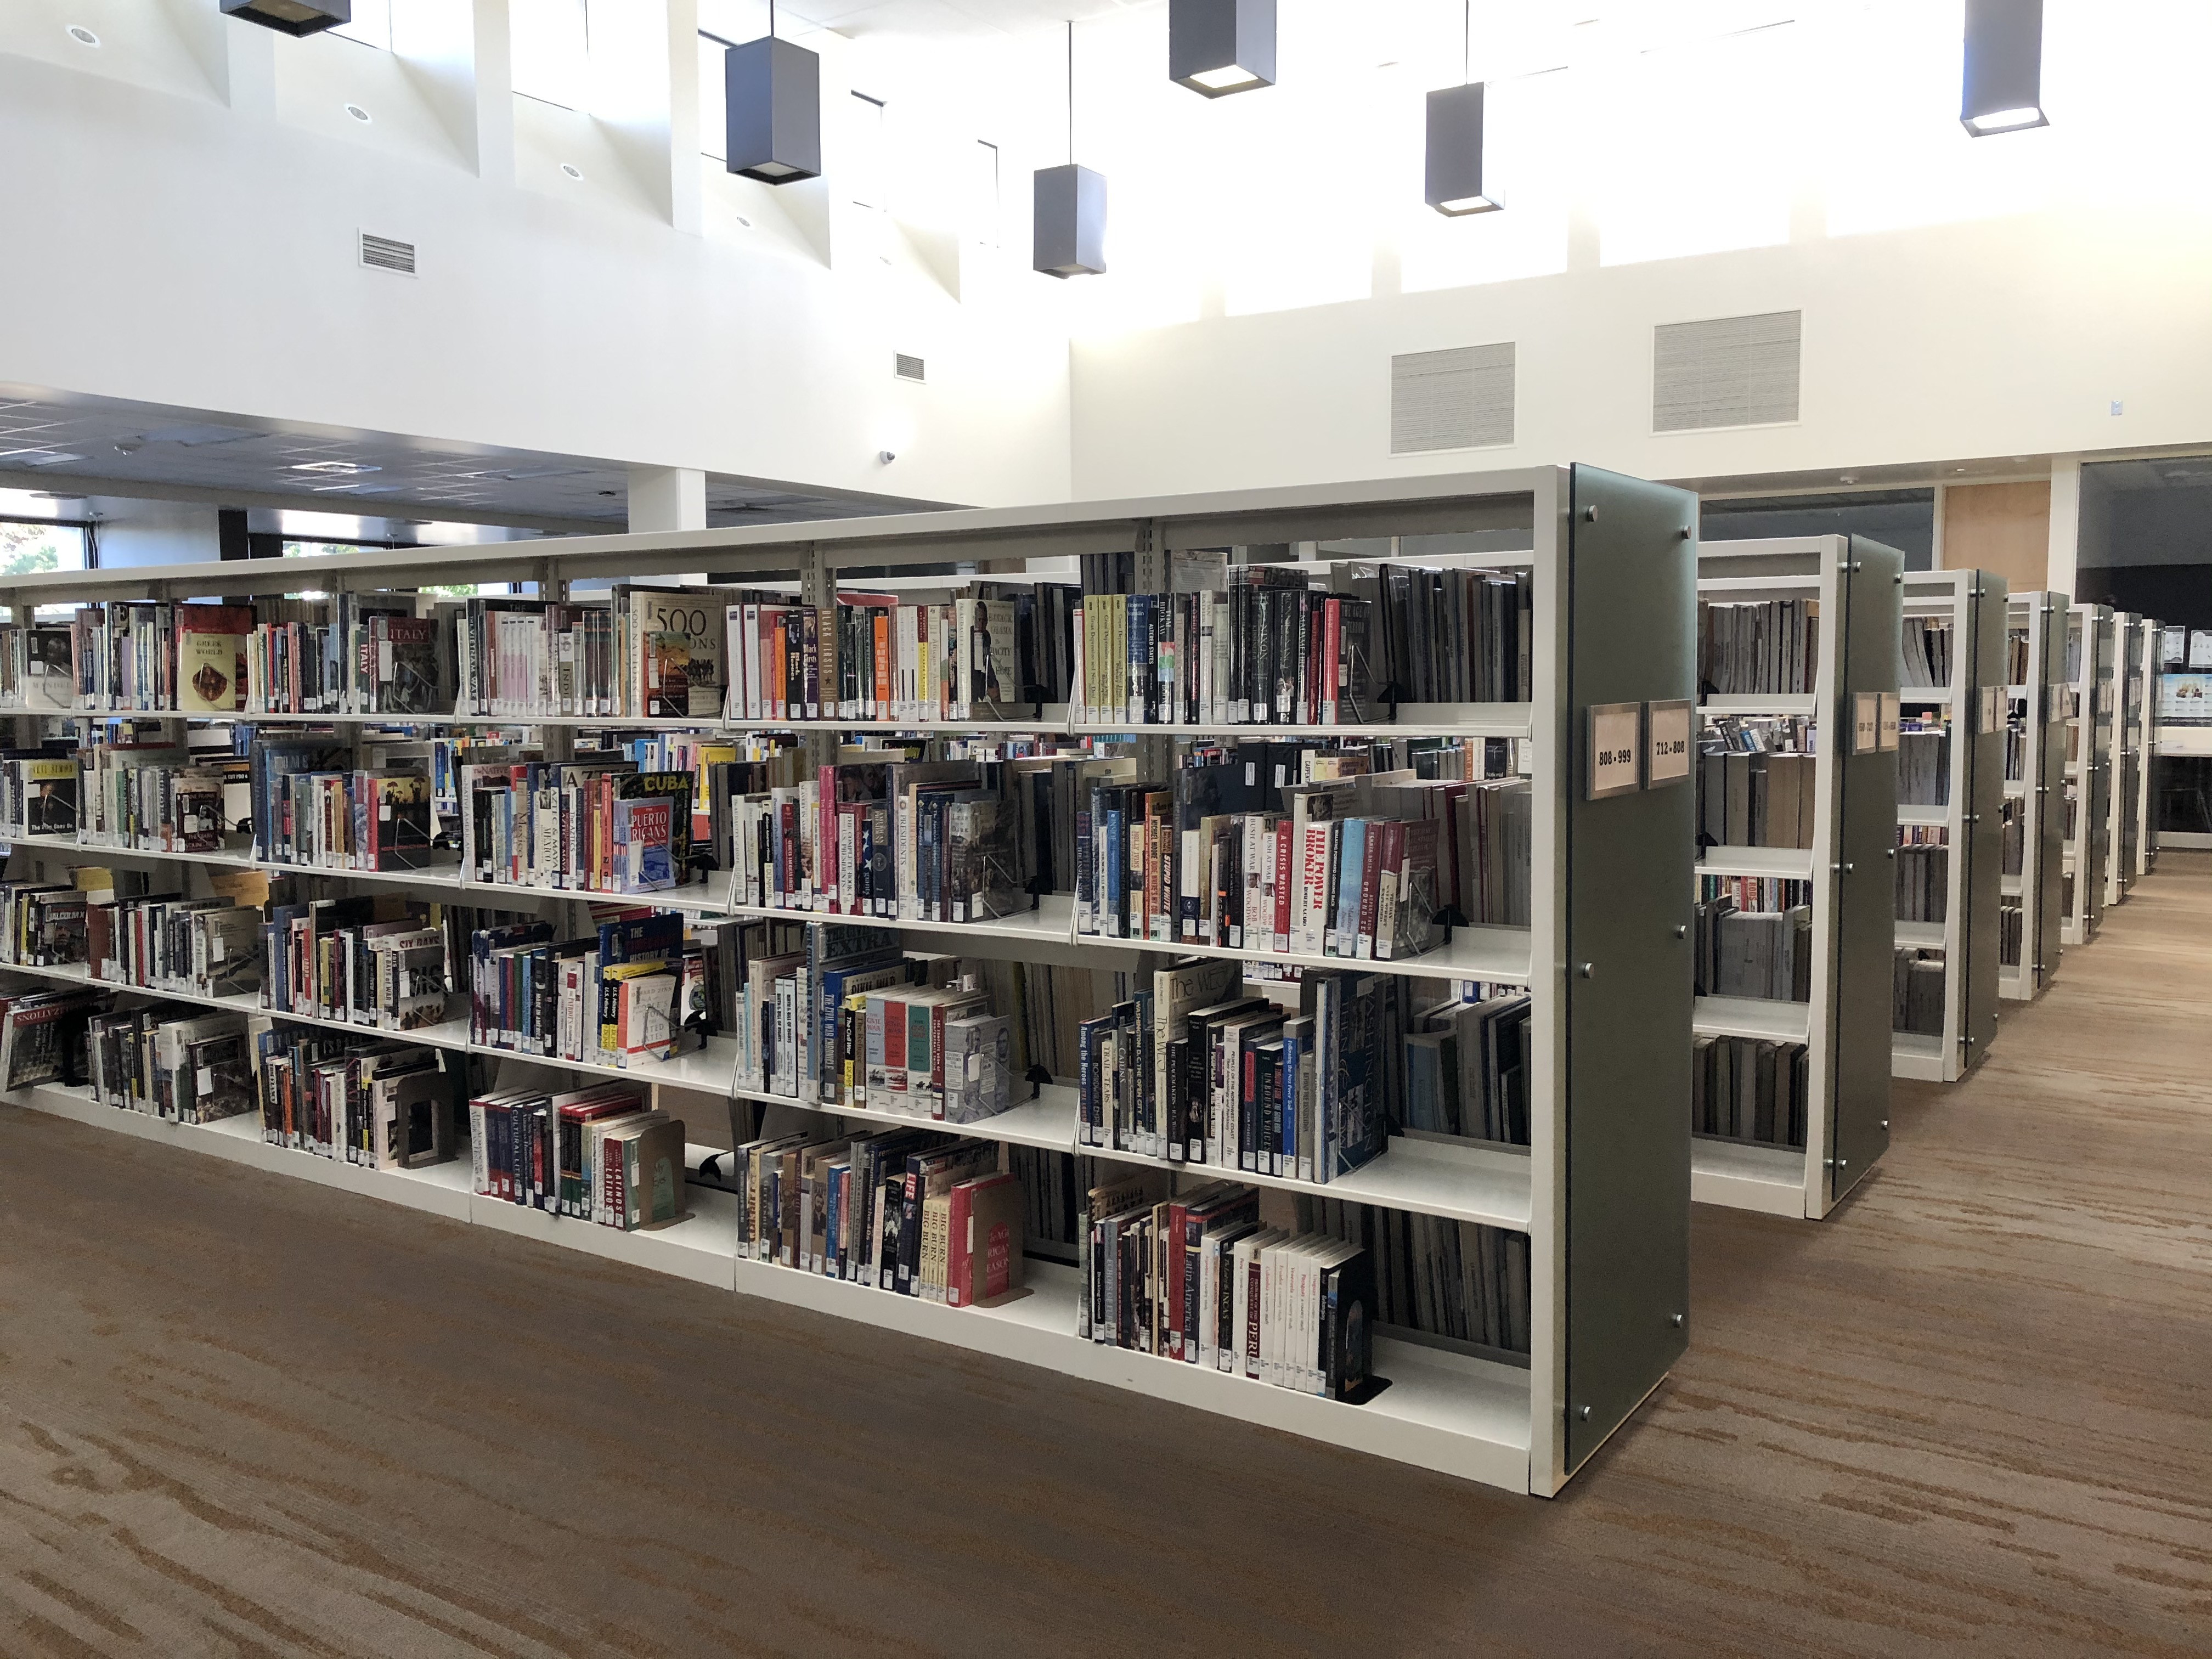 rows of bookshelves in library